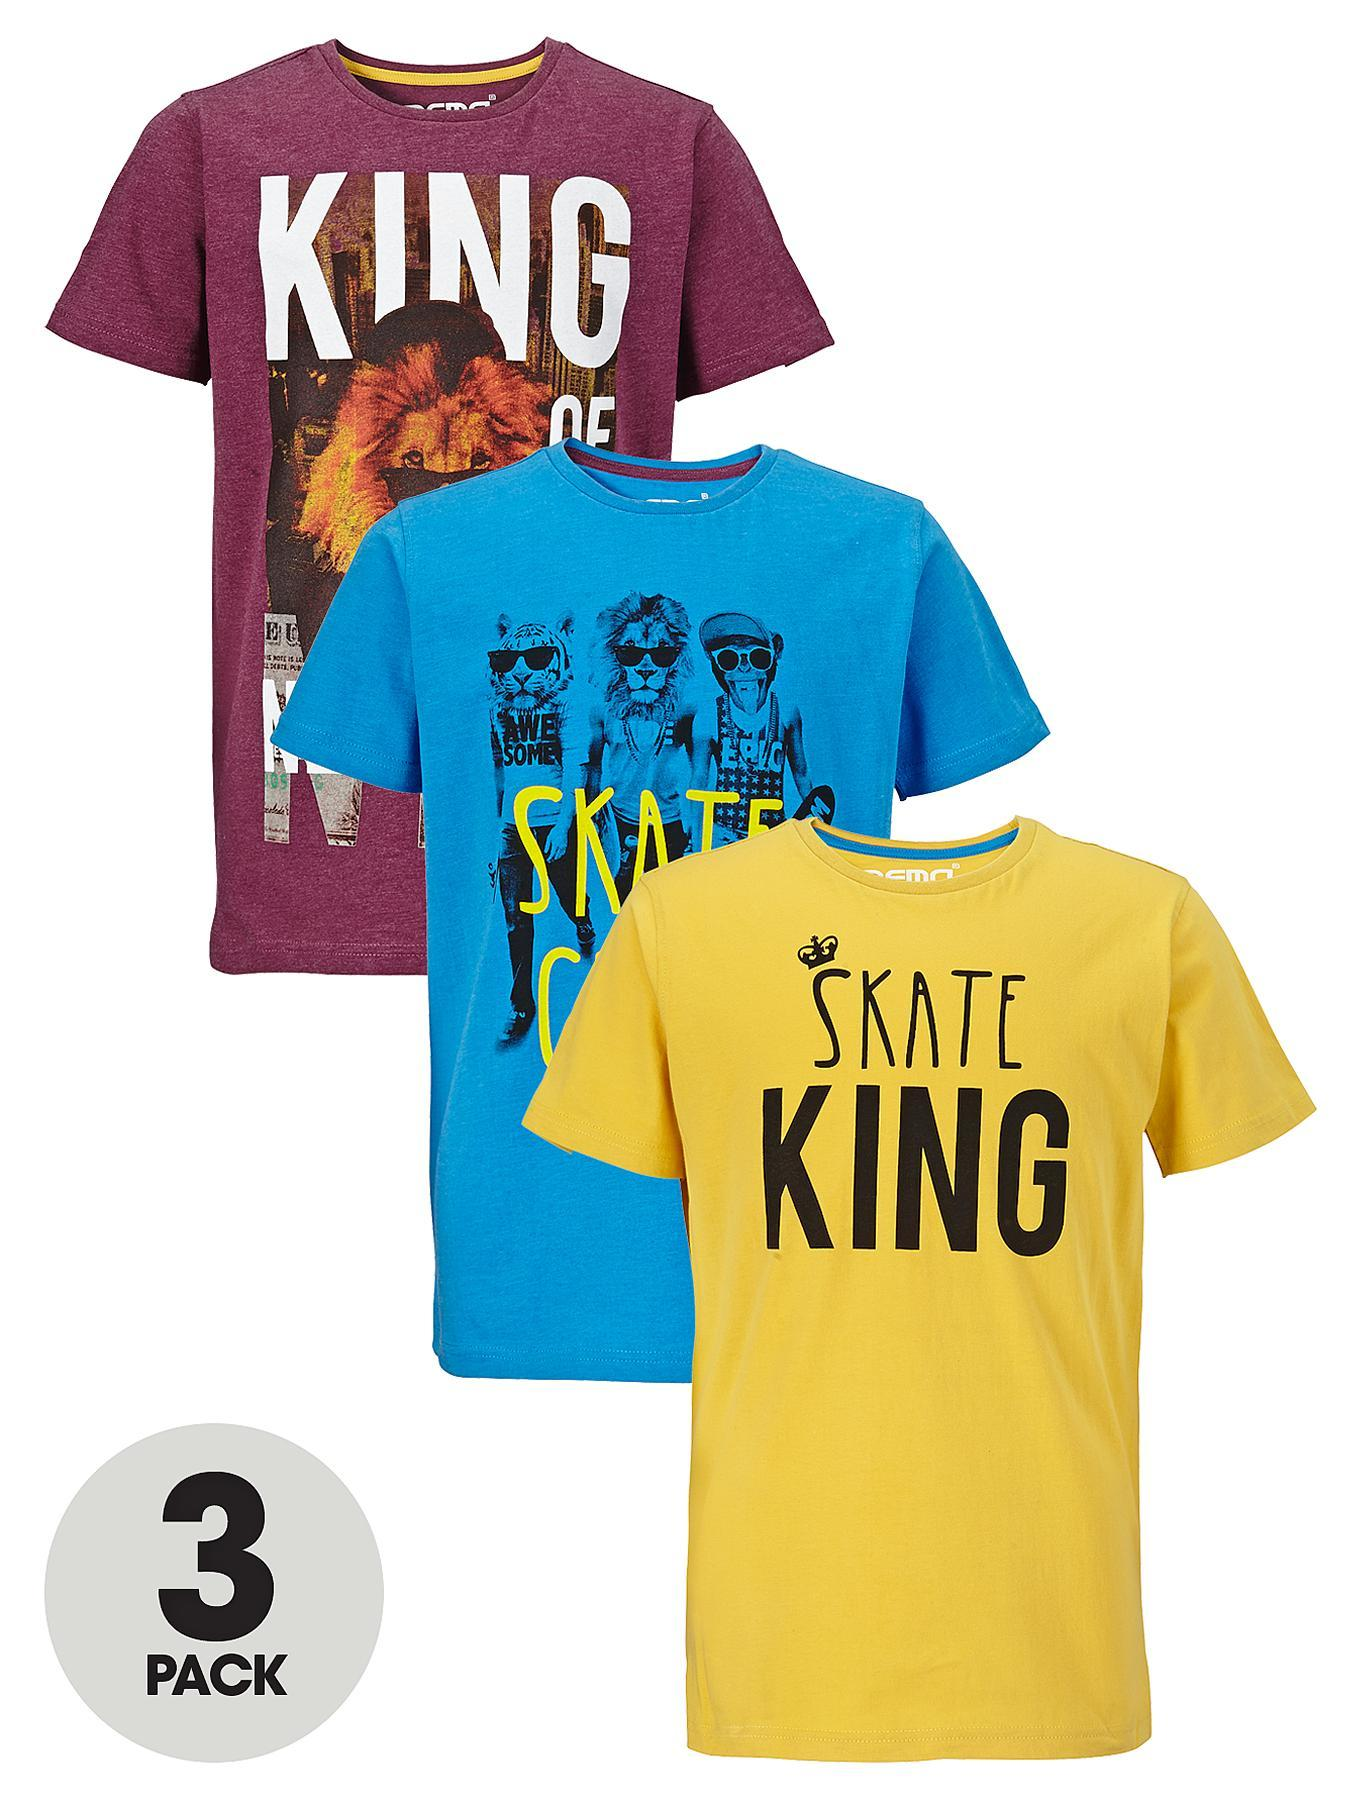 Boys Skate King T-shirts (3 Pack)